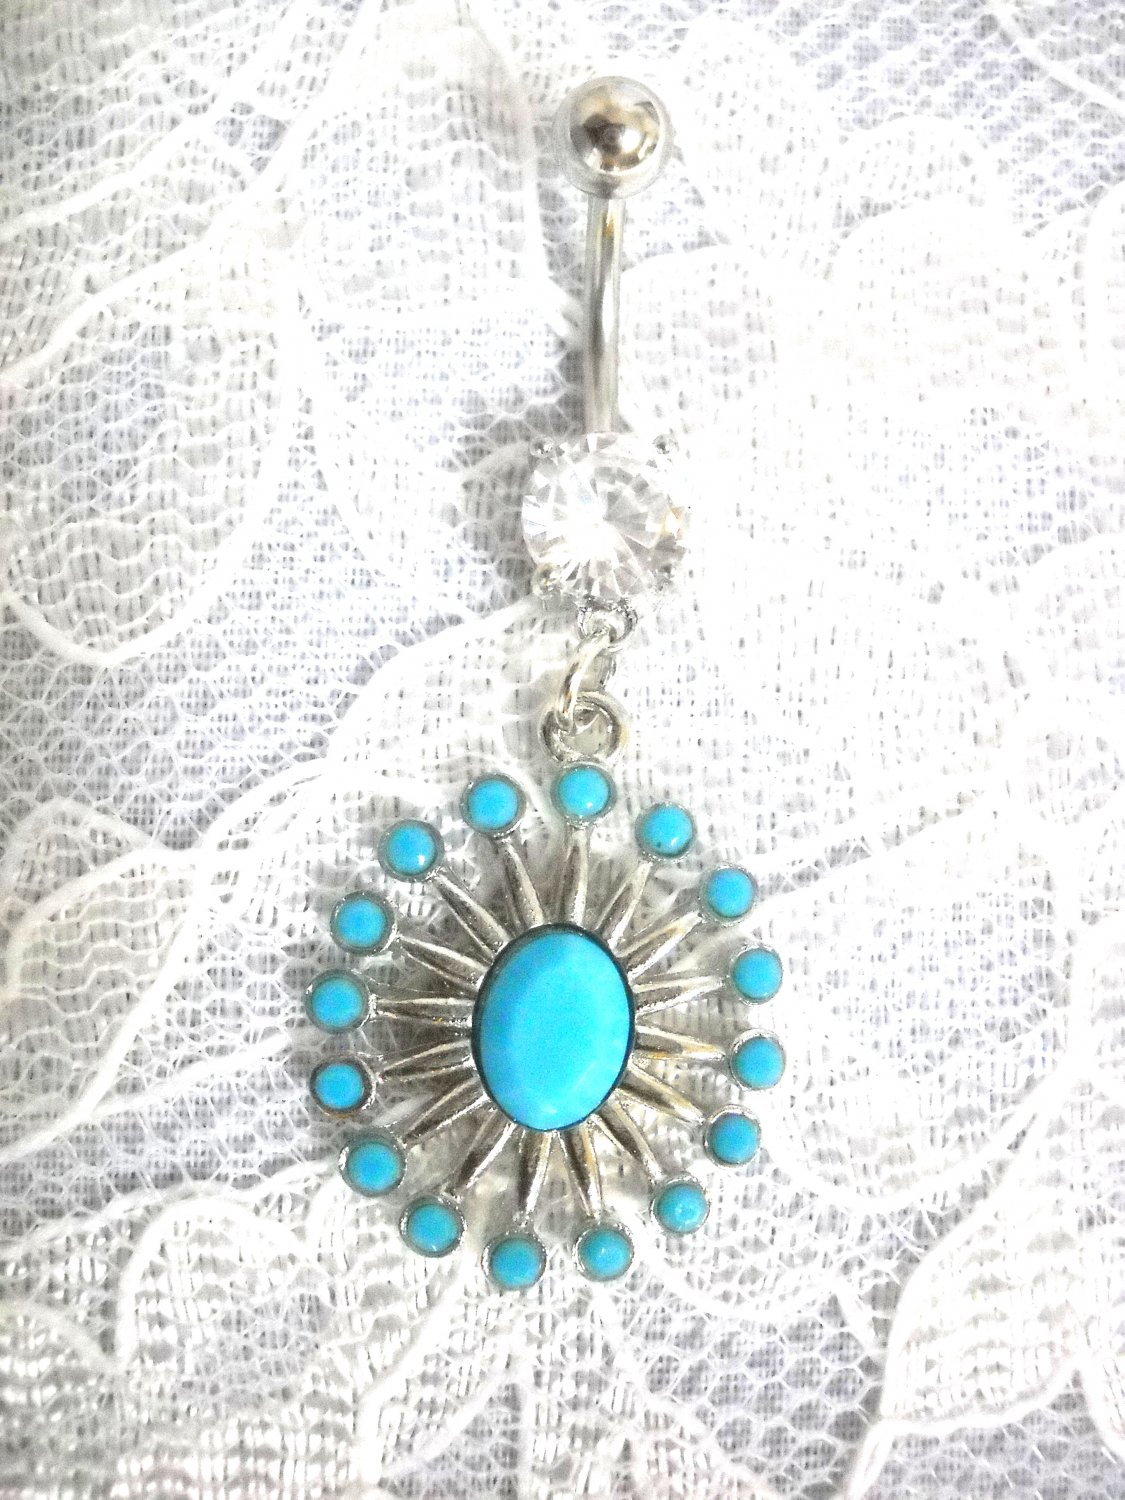 NATIVE STYLE NEEDLEPOINT BURST TURQUOISE BLUE GEMS CLEAR CZ BELLY BUTTON RING